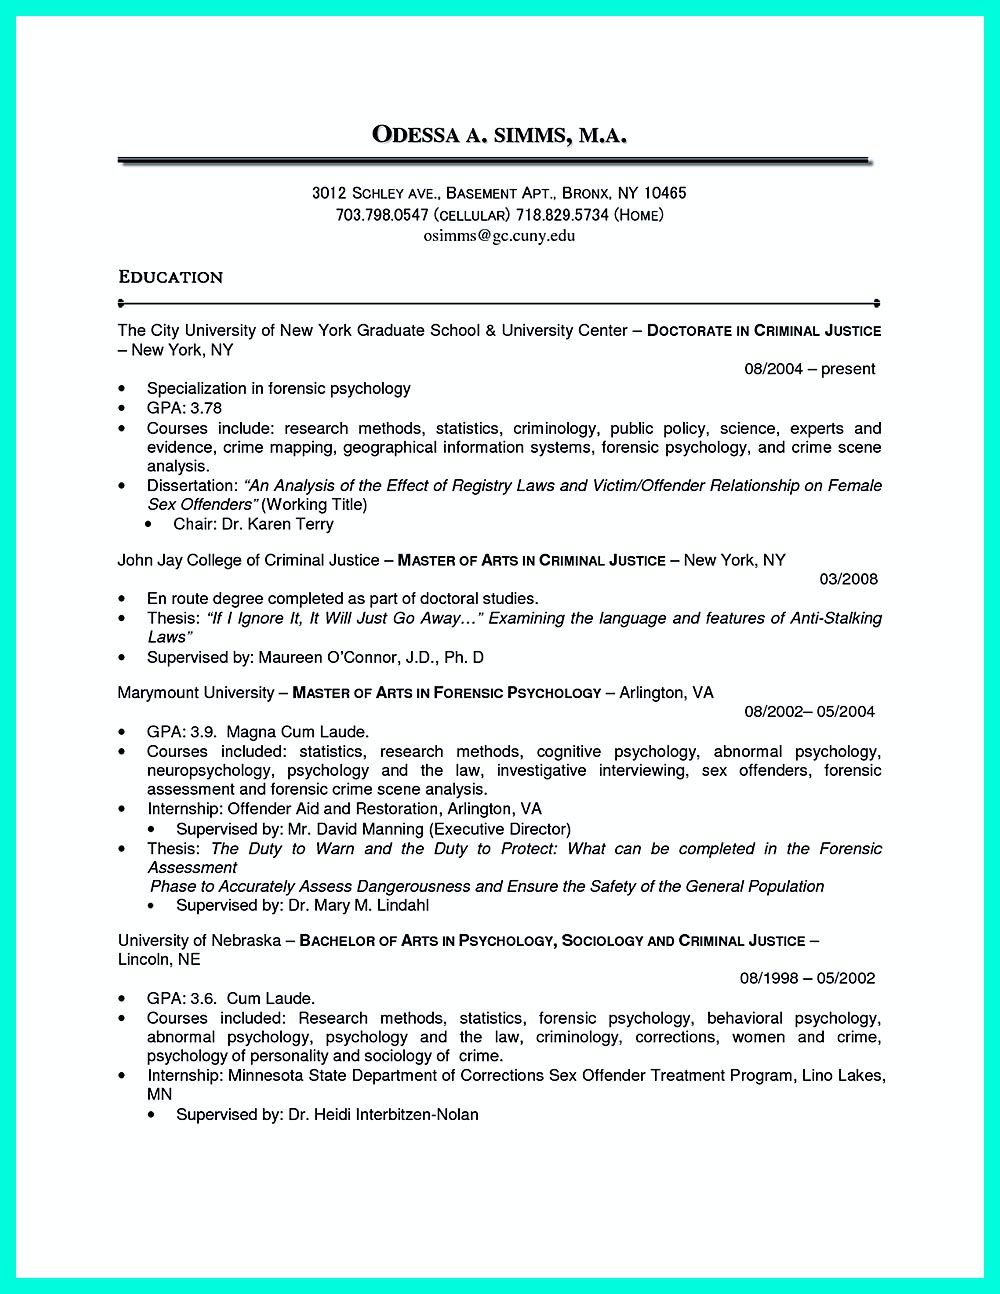 [ Sample Resume Disney Security Logistics Specialist Examples Exercise  Psychologist Executive Summary Templates Criminal Justice Cover Letter  Samples ...  Criminal Justice Resume Examples